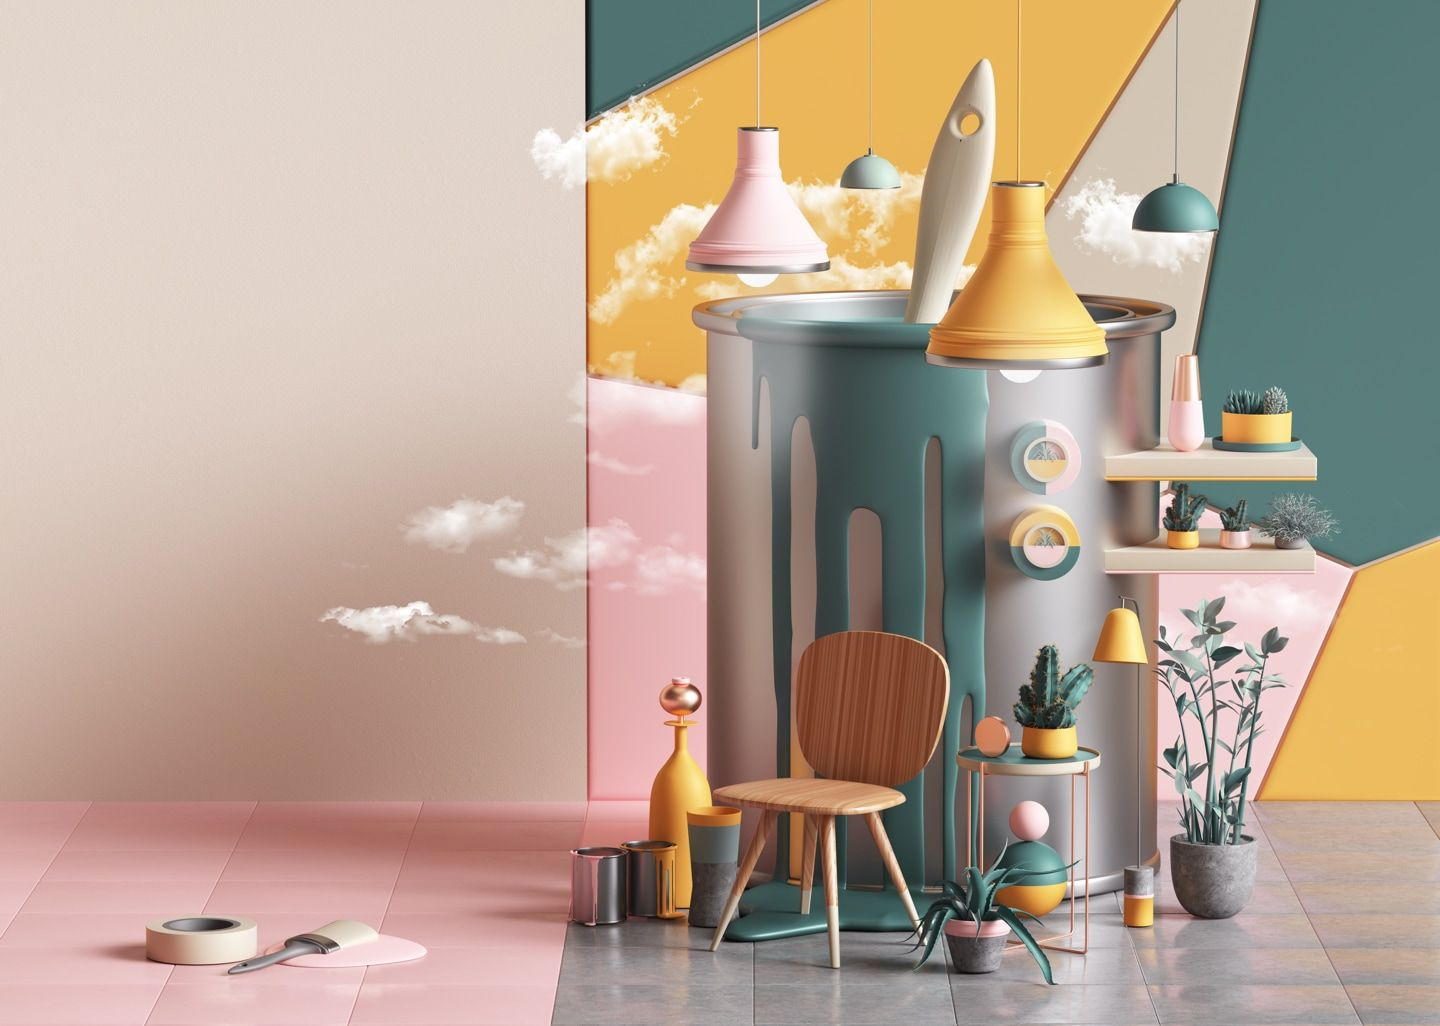 Tendencias Papel Pintado 2019 Pinterest Predice Las 10 Tendencias En Decoración Para 2019